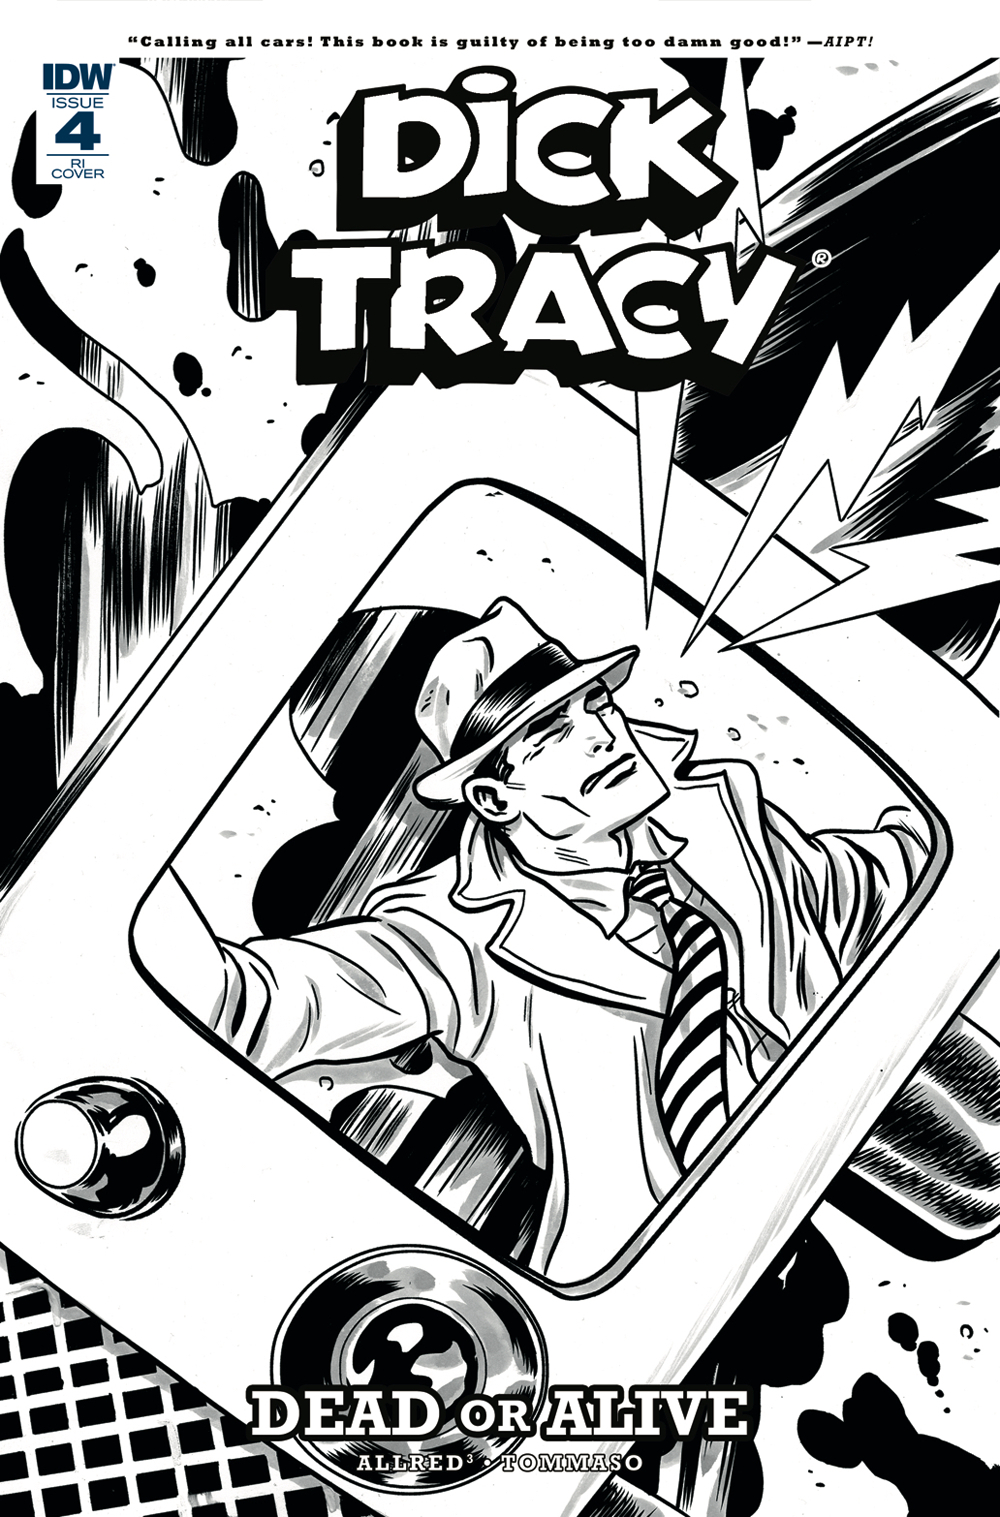 DICK TRACY DEAD OR ALIVE #4 (OF 4) 10 COPY INCV ALLRED